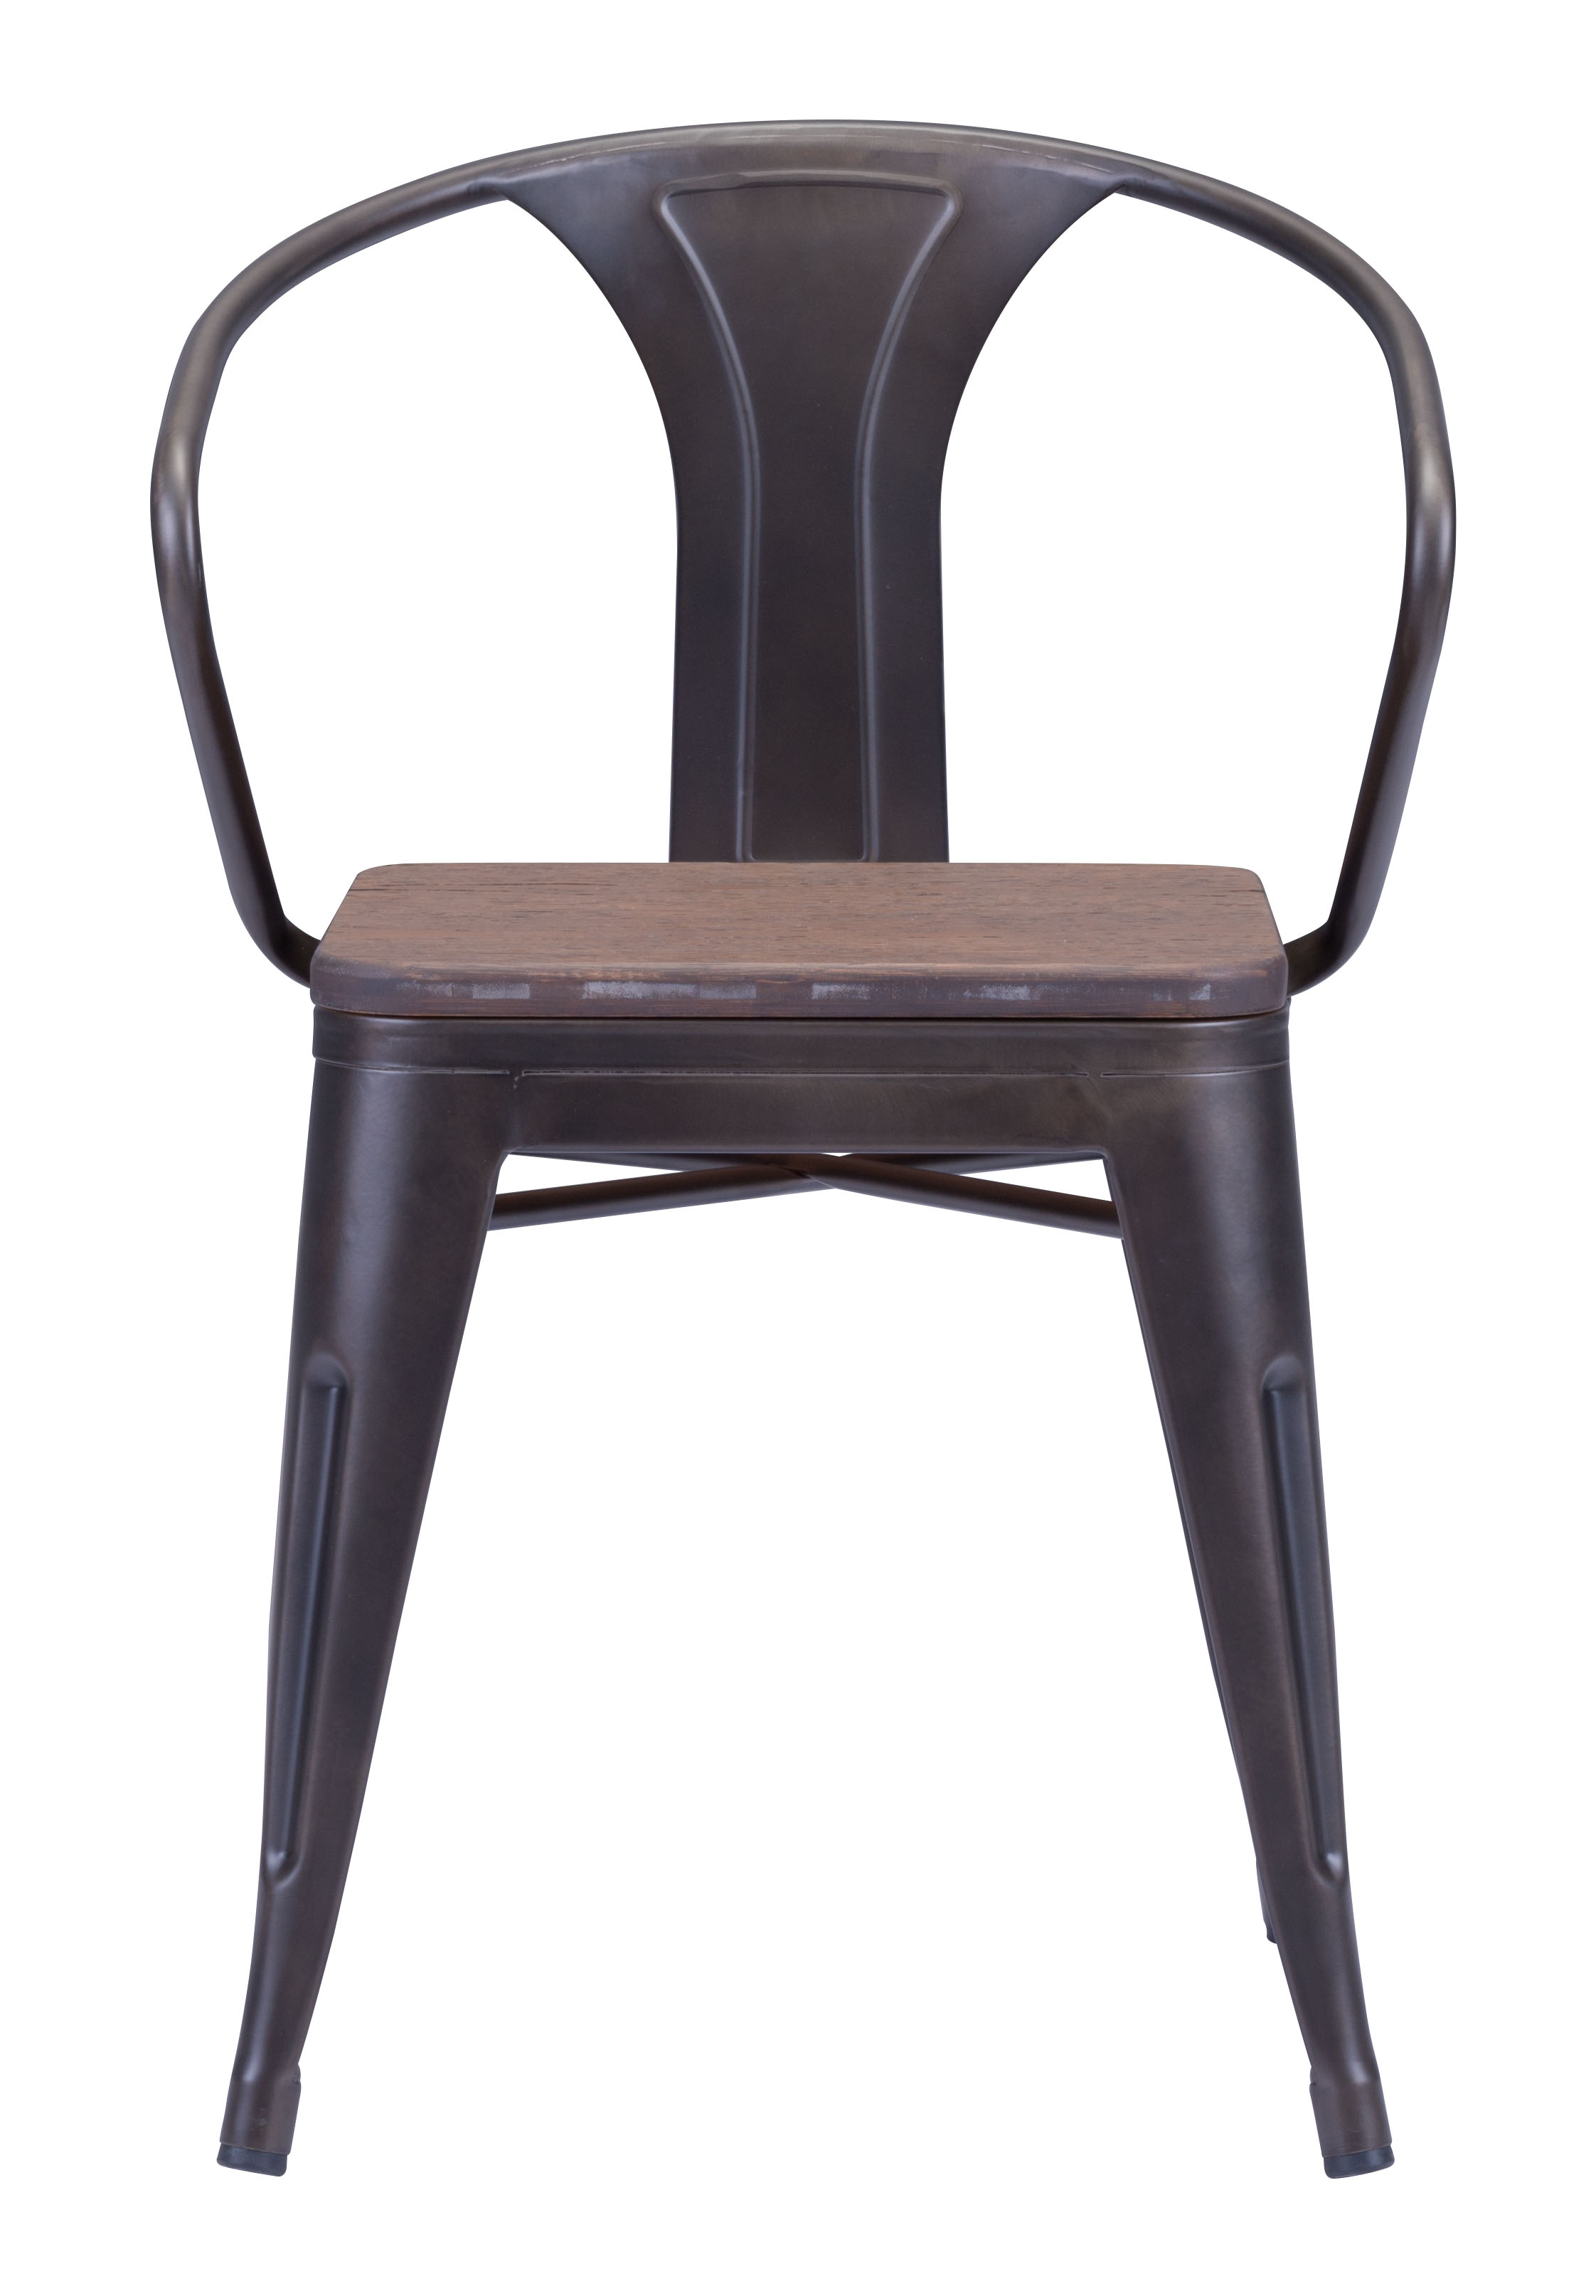 108148 helix dining chair